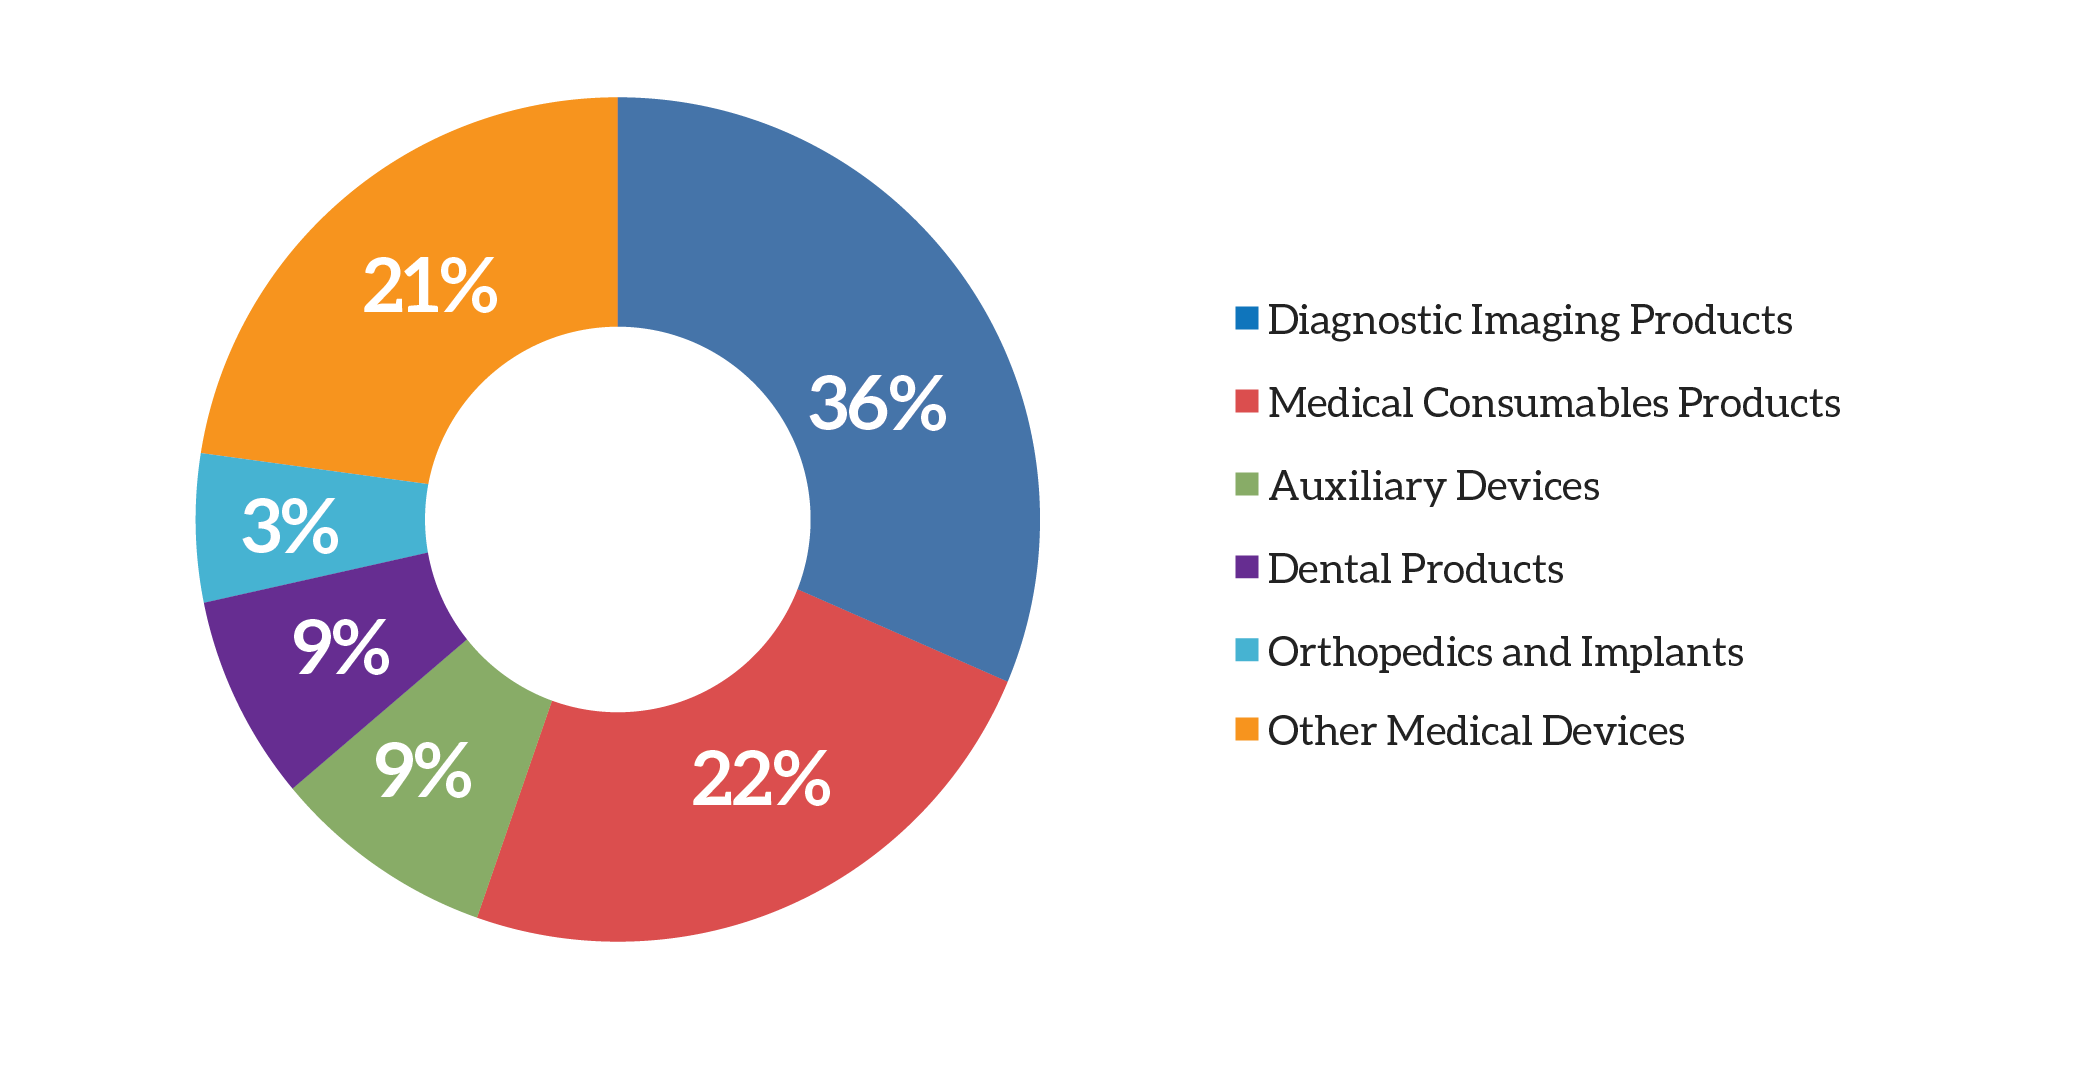 Philippines Medical Device Market, 2012